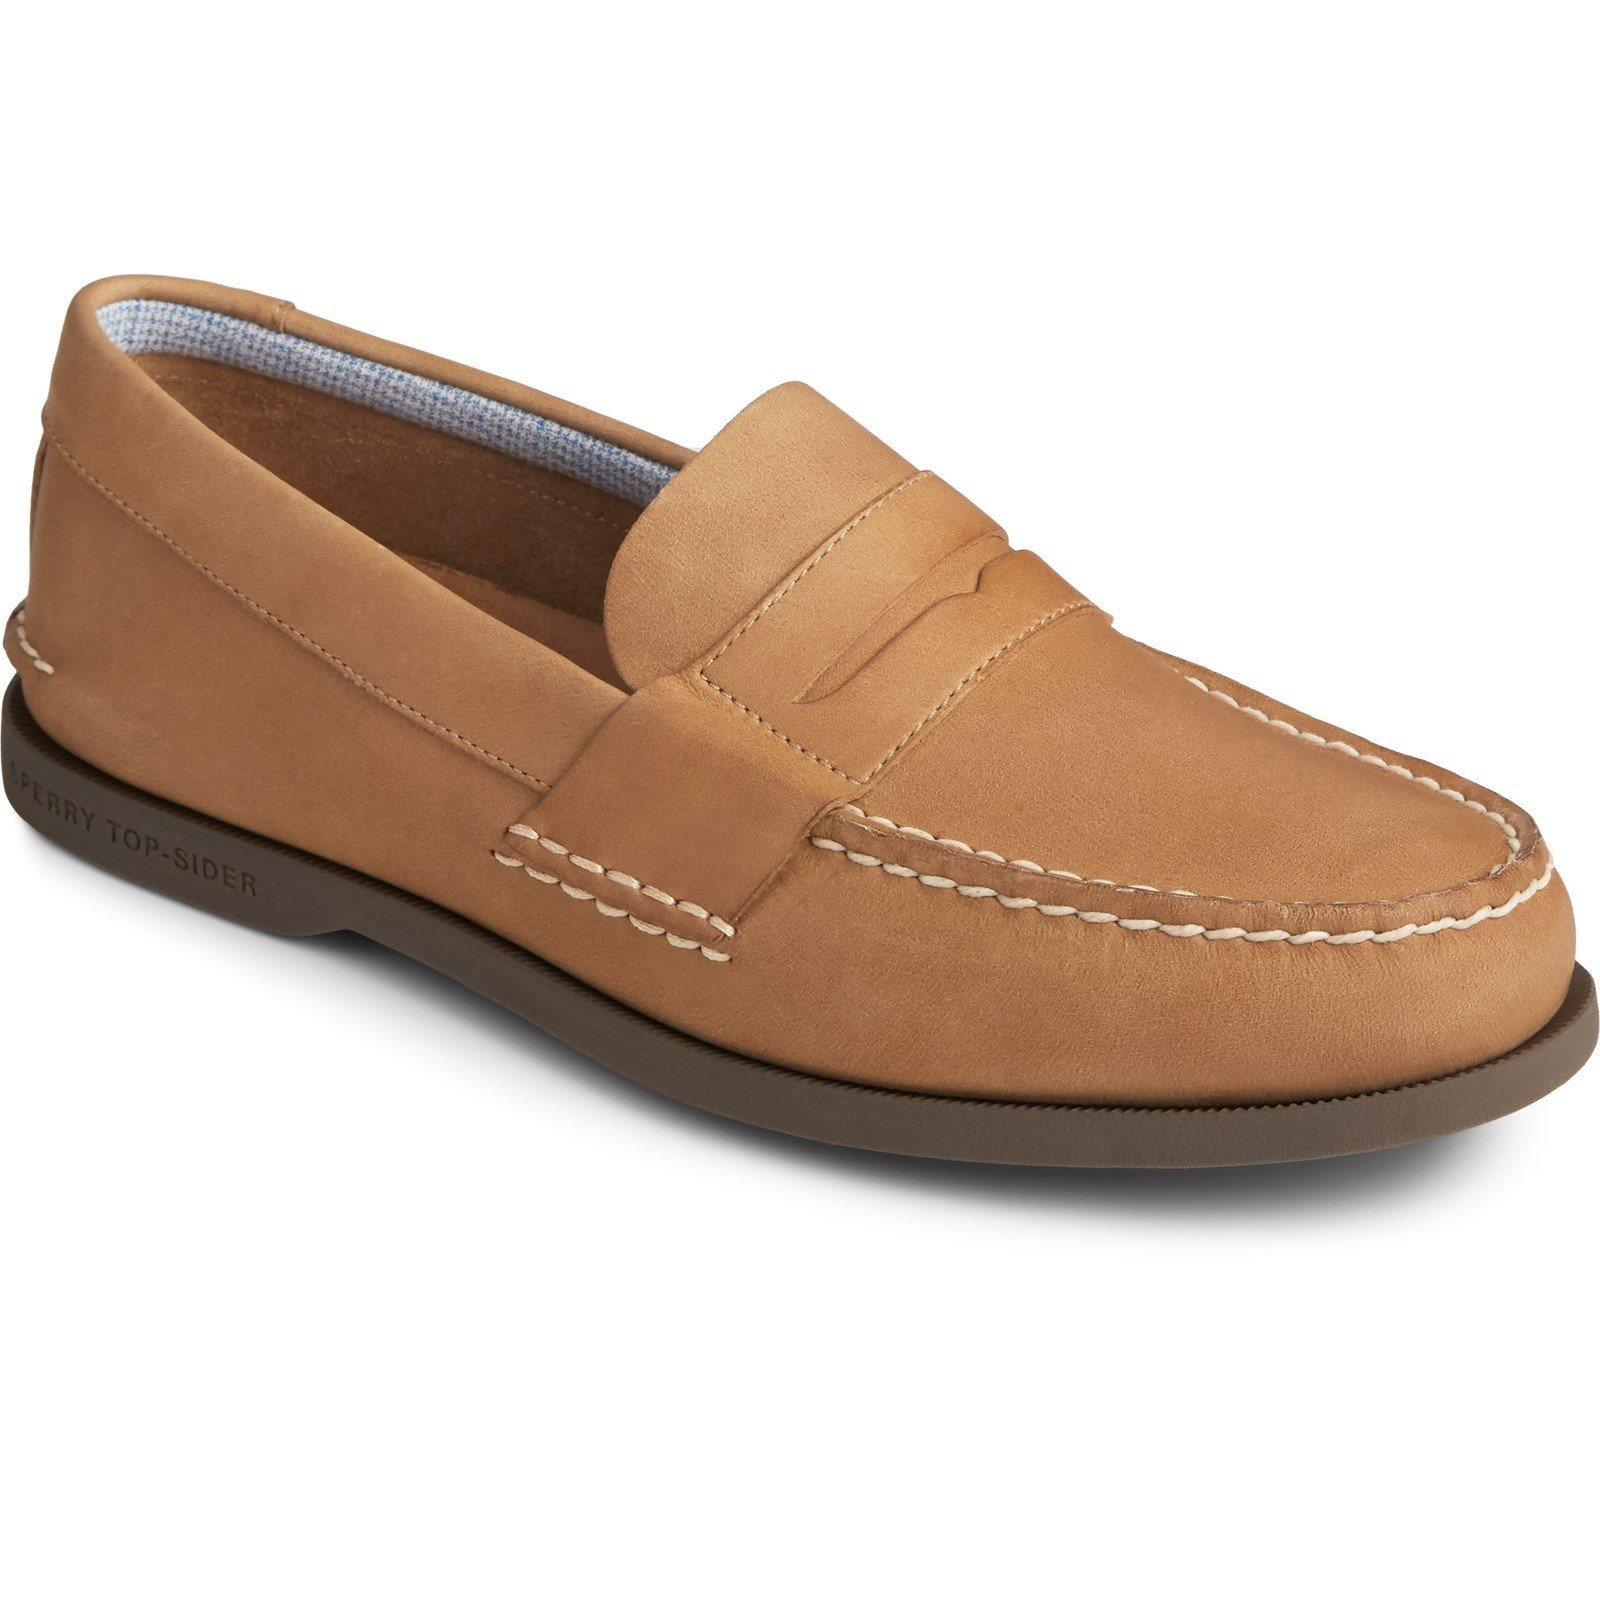 Sperry Men's Authentic Original Penny Loafer Various Colours 31733 - Sahara 10